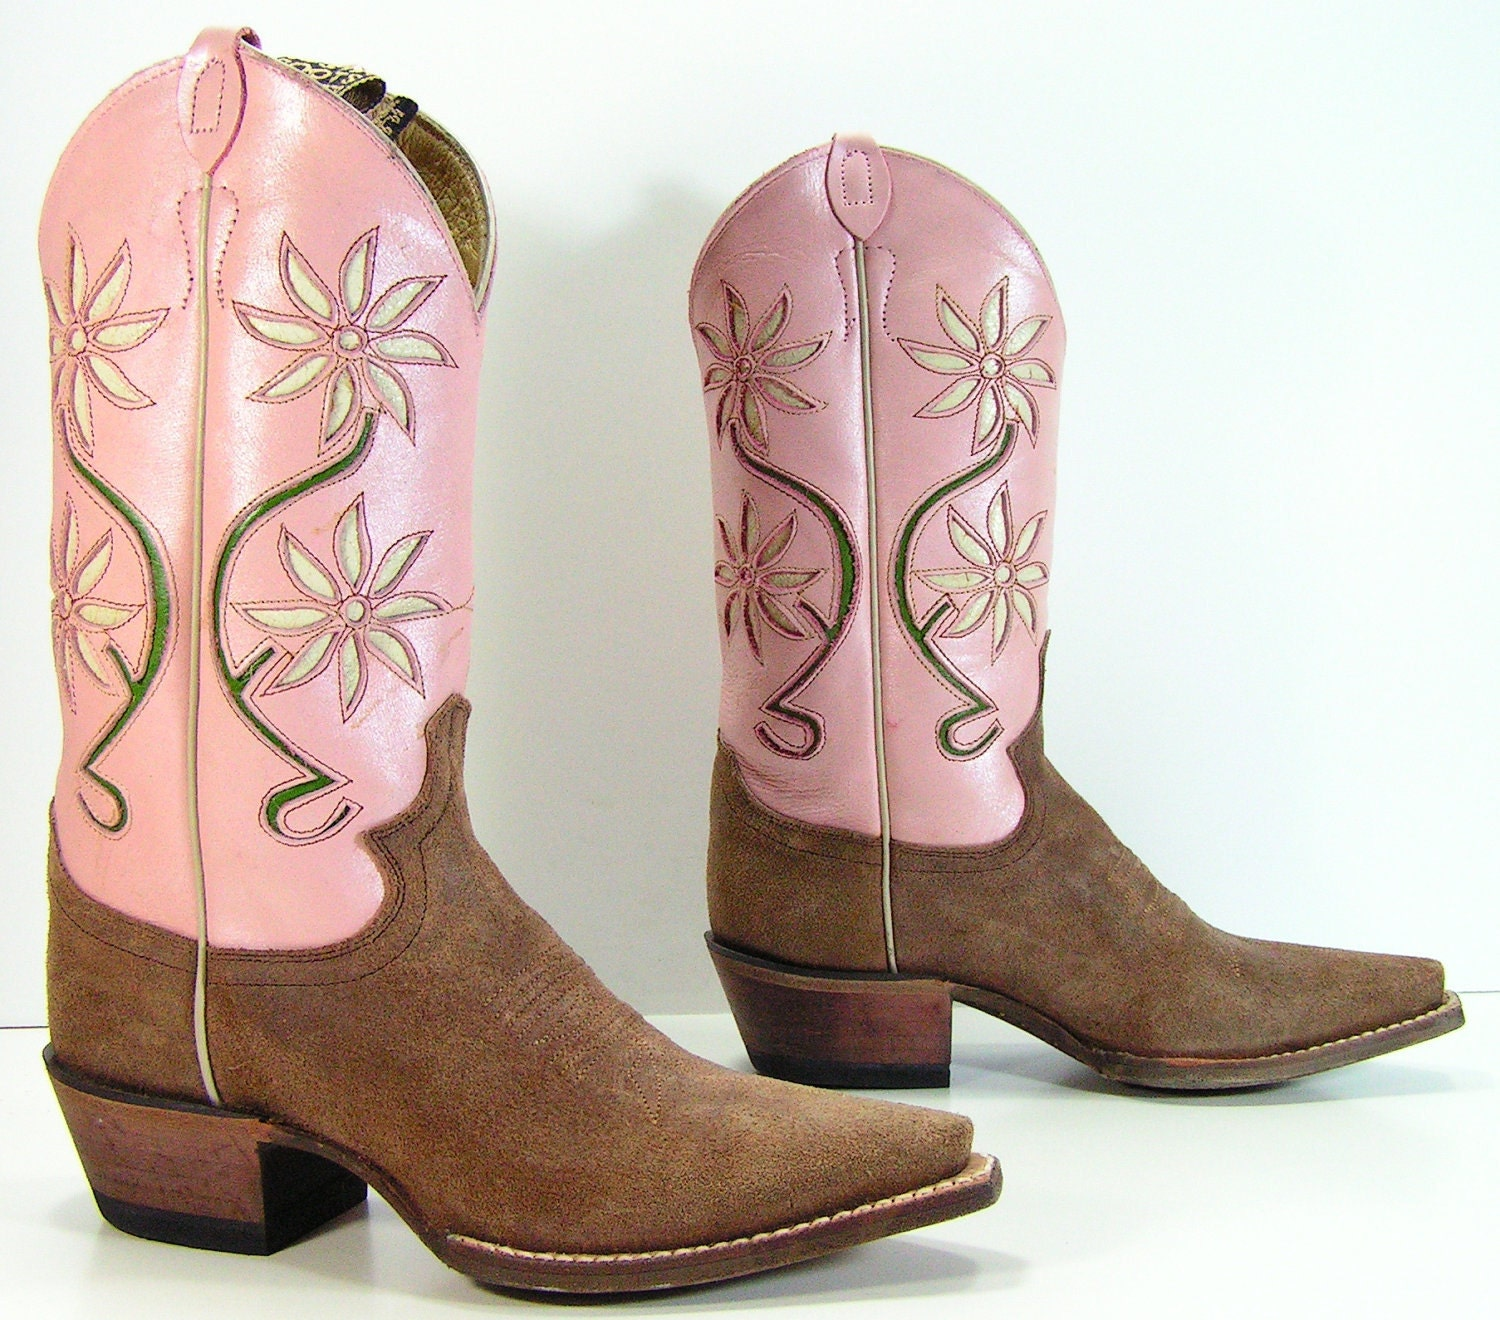 pink cowboy boots womens 5.5 B M vintage by vintagecowboyboots